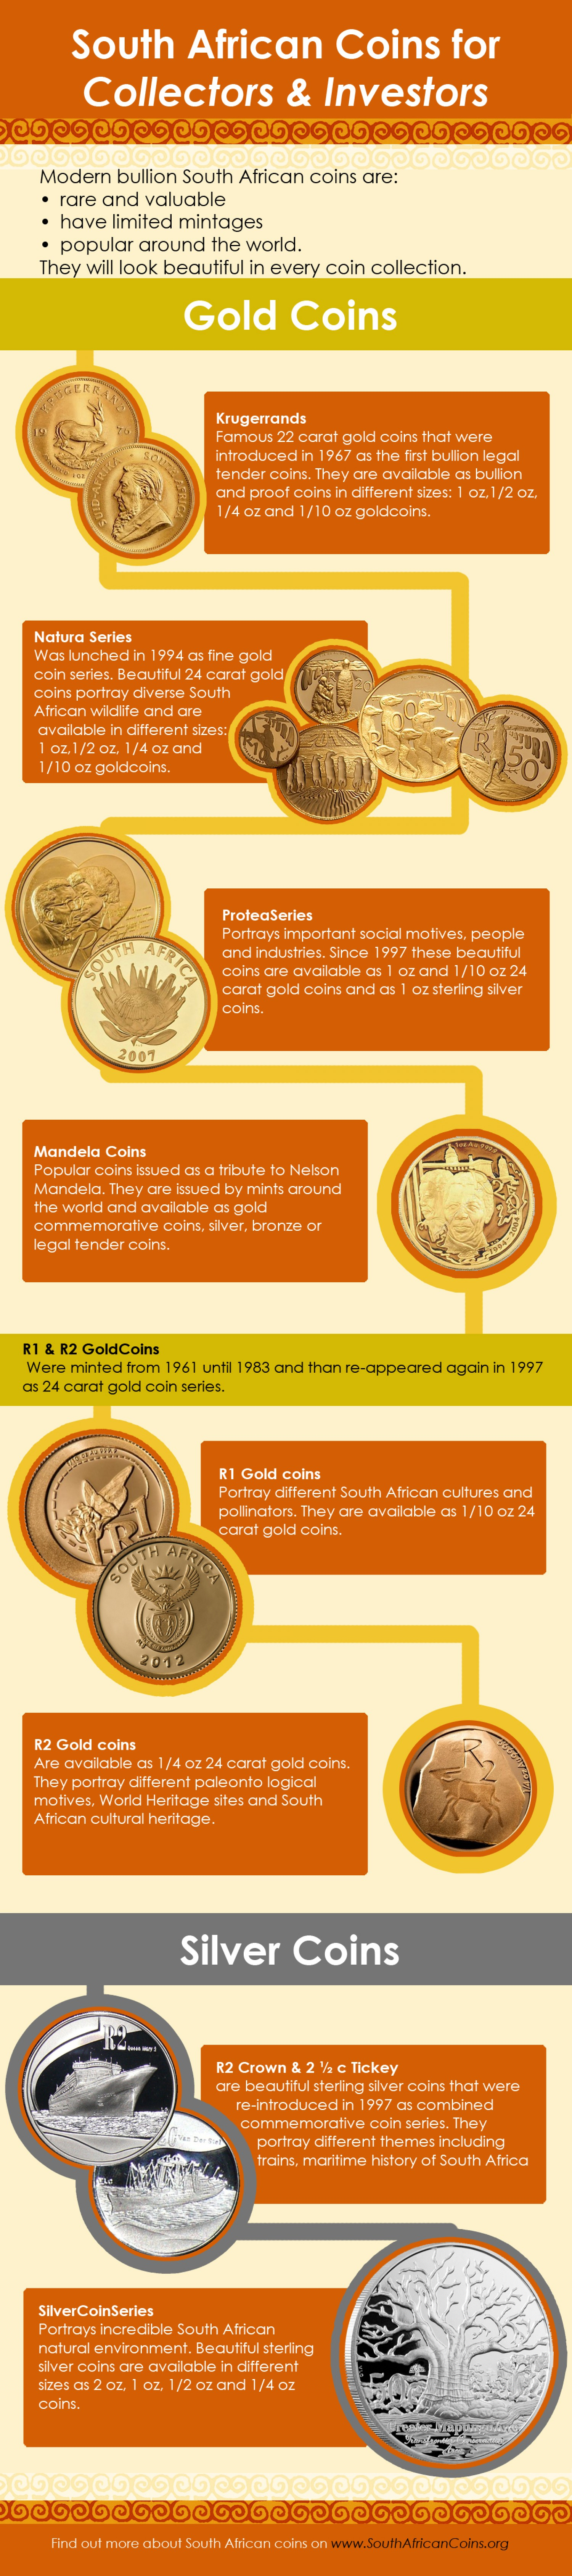 why is gold important in south africa